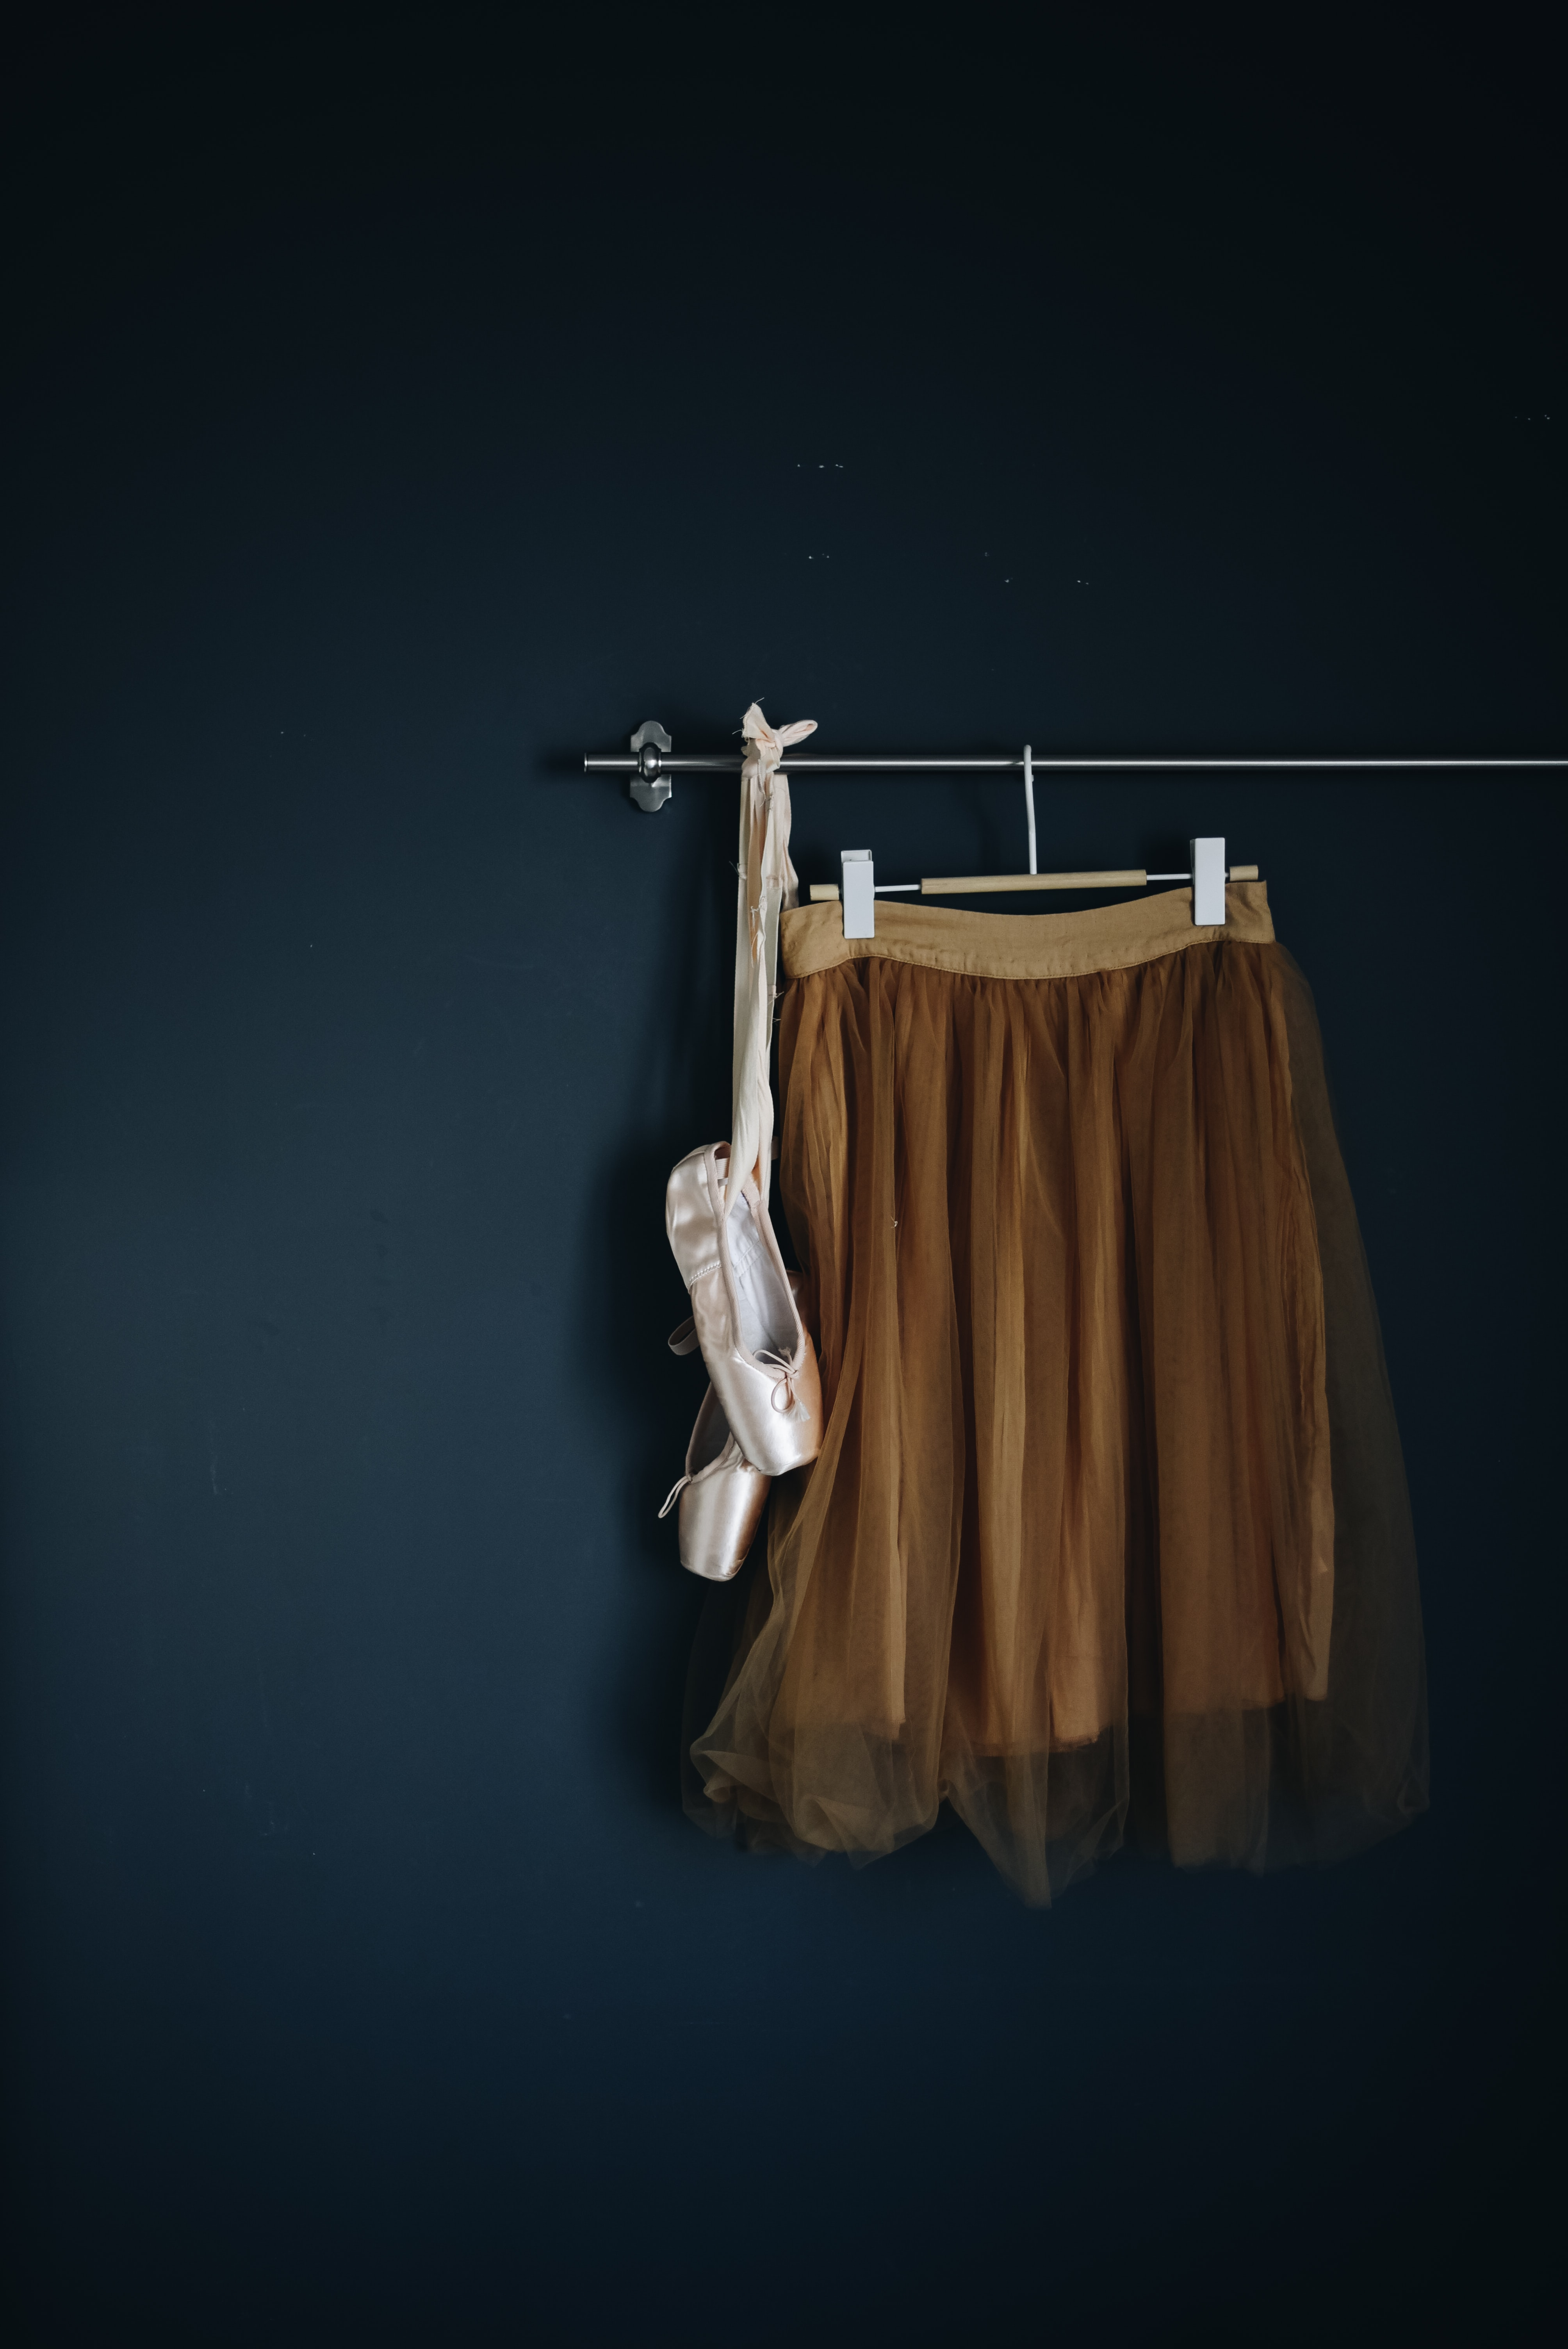 brown skirt hanged on wall